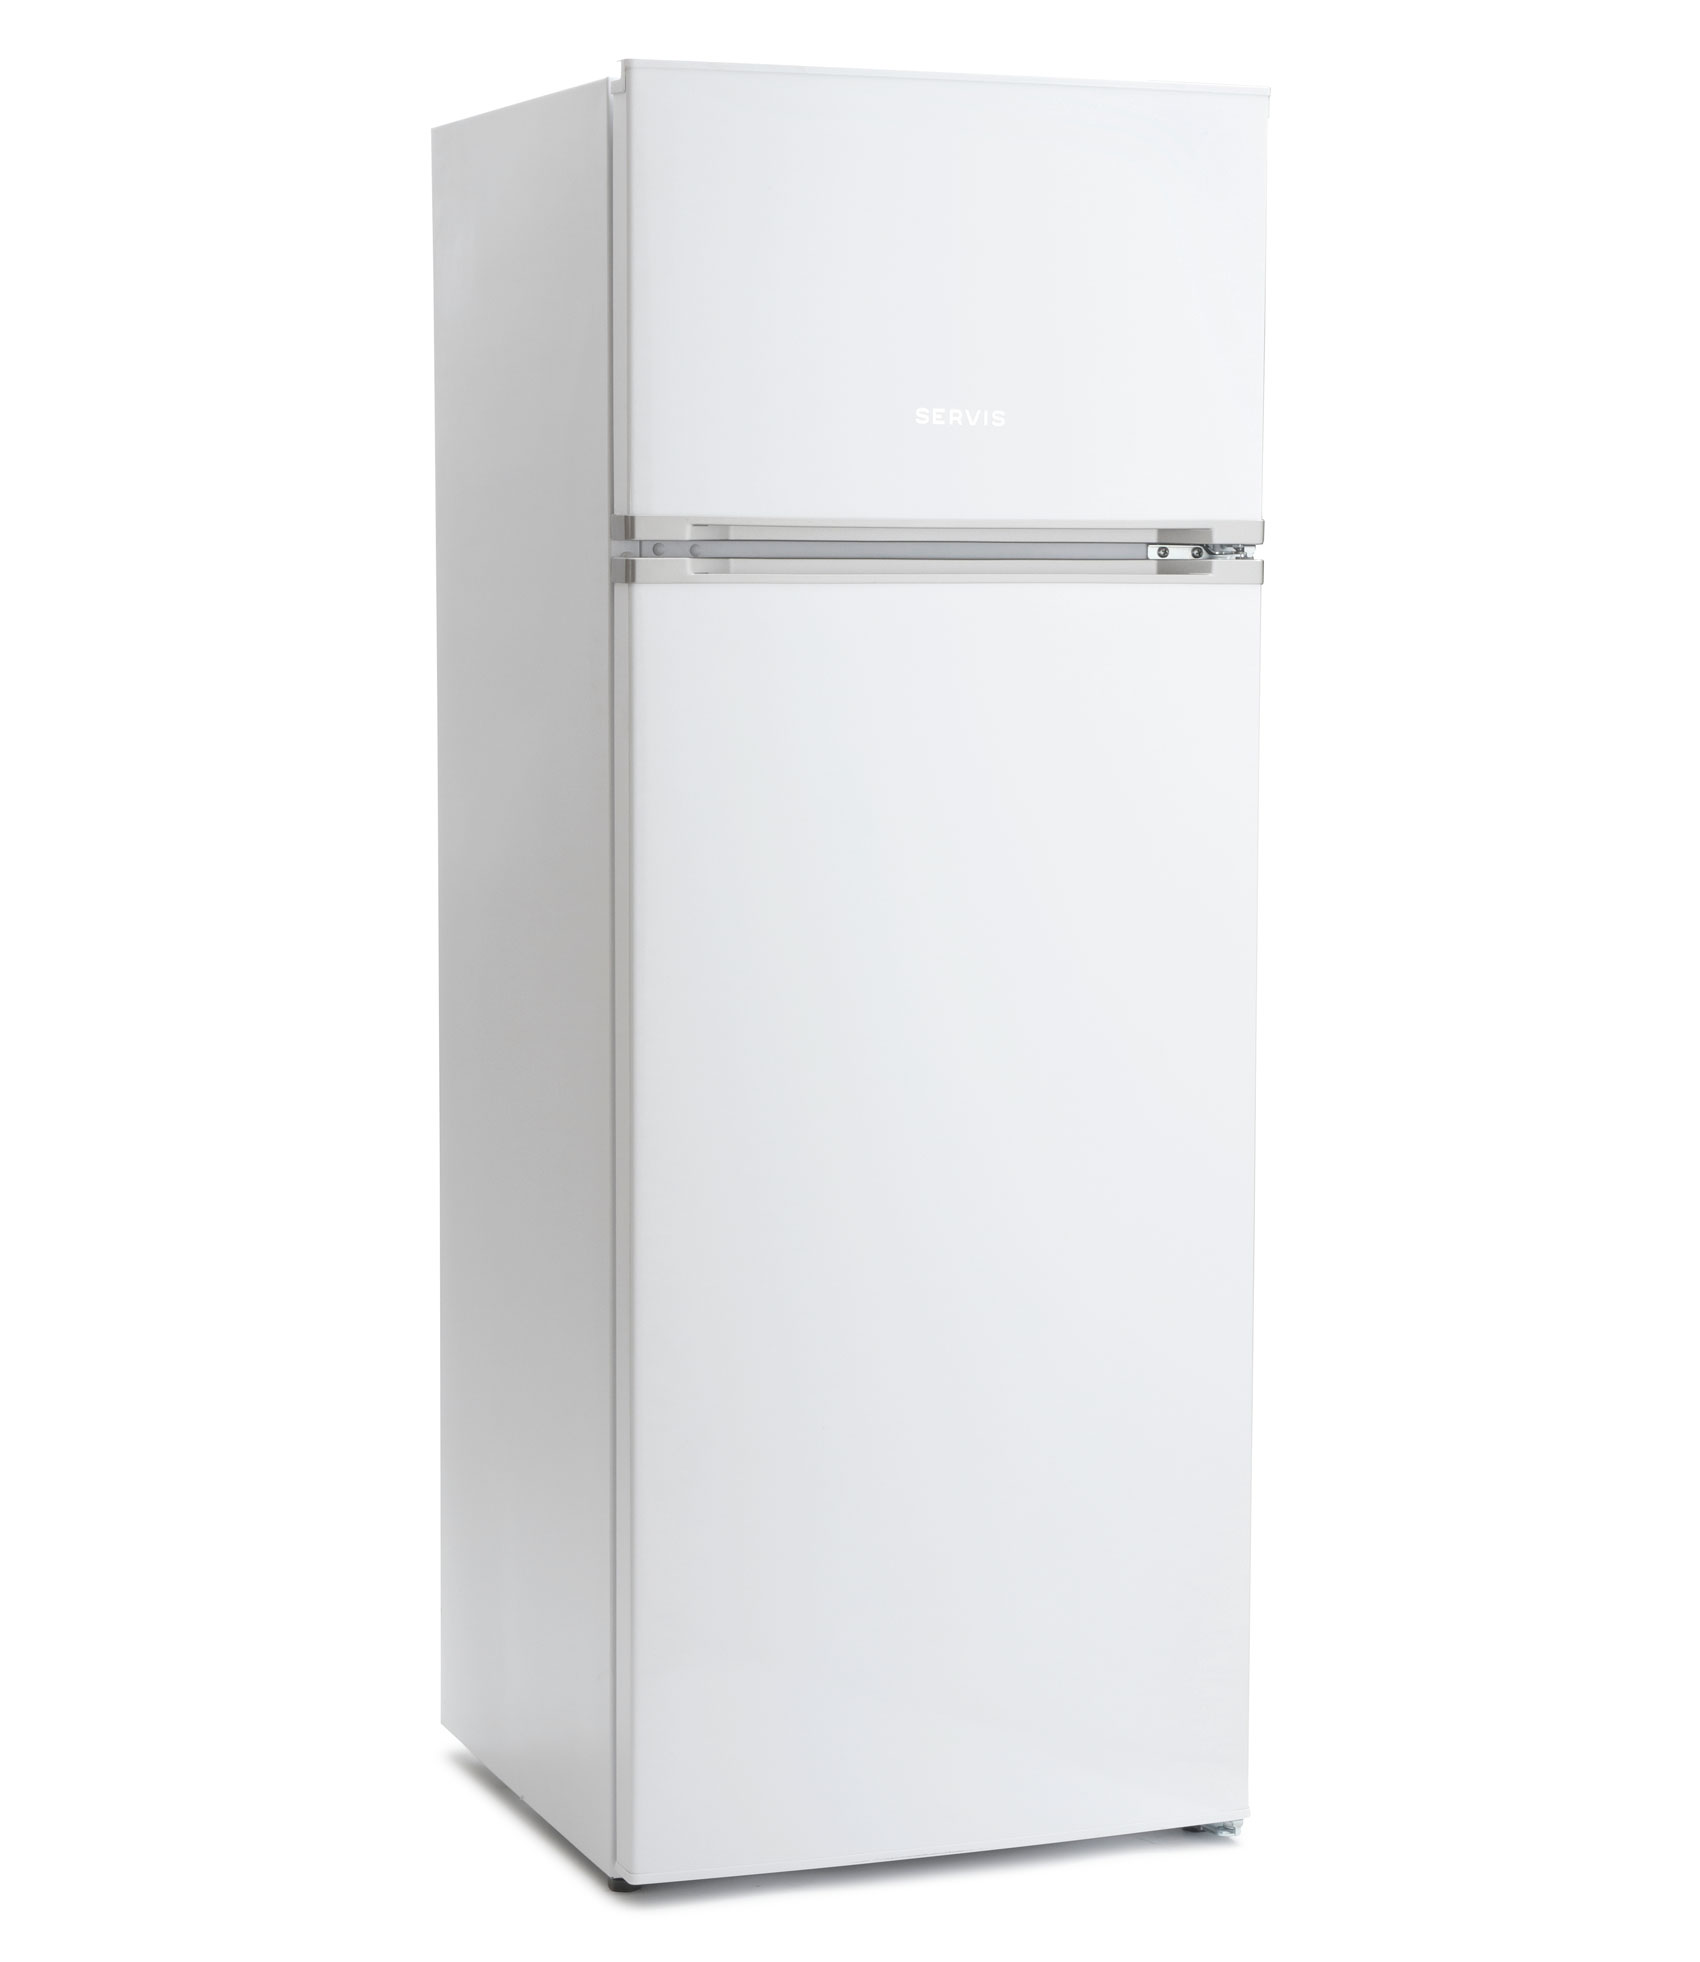 T54144 - Fridge Freezer